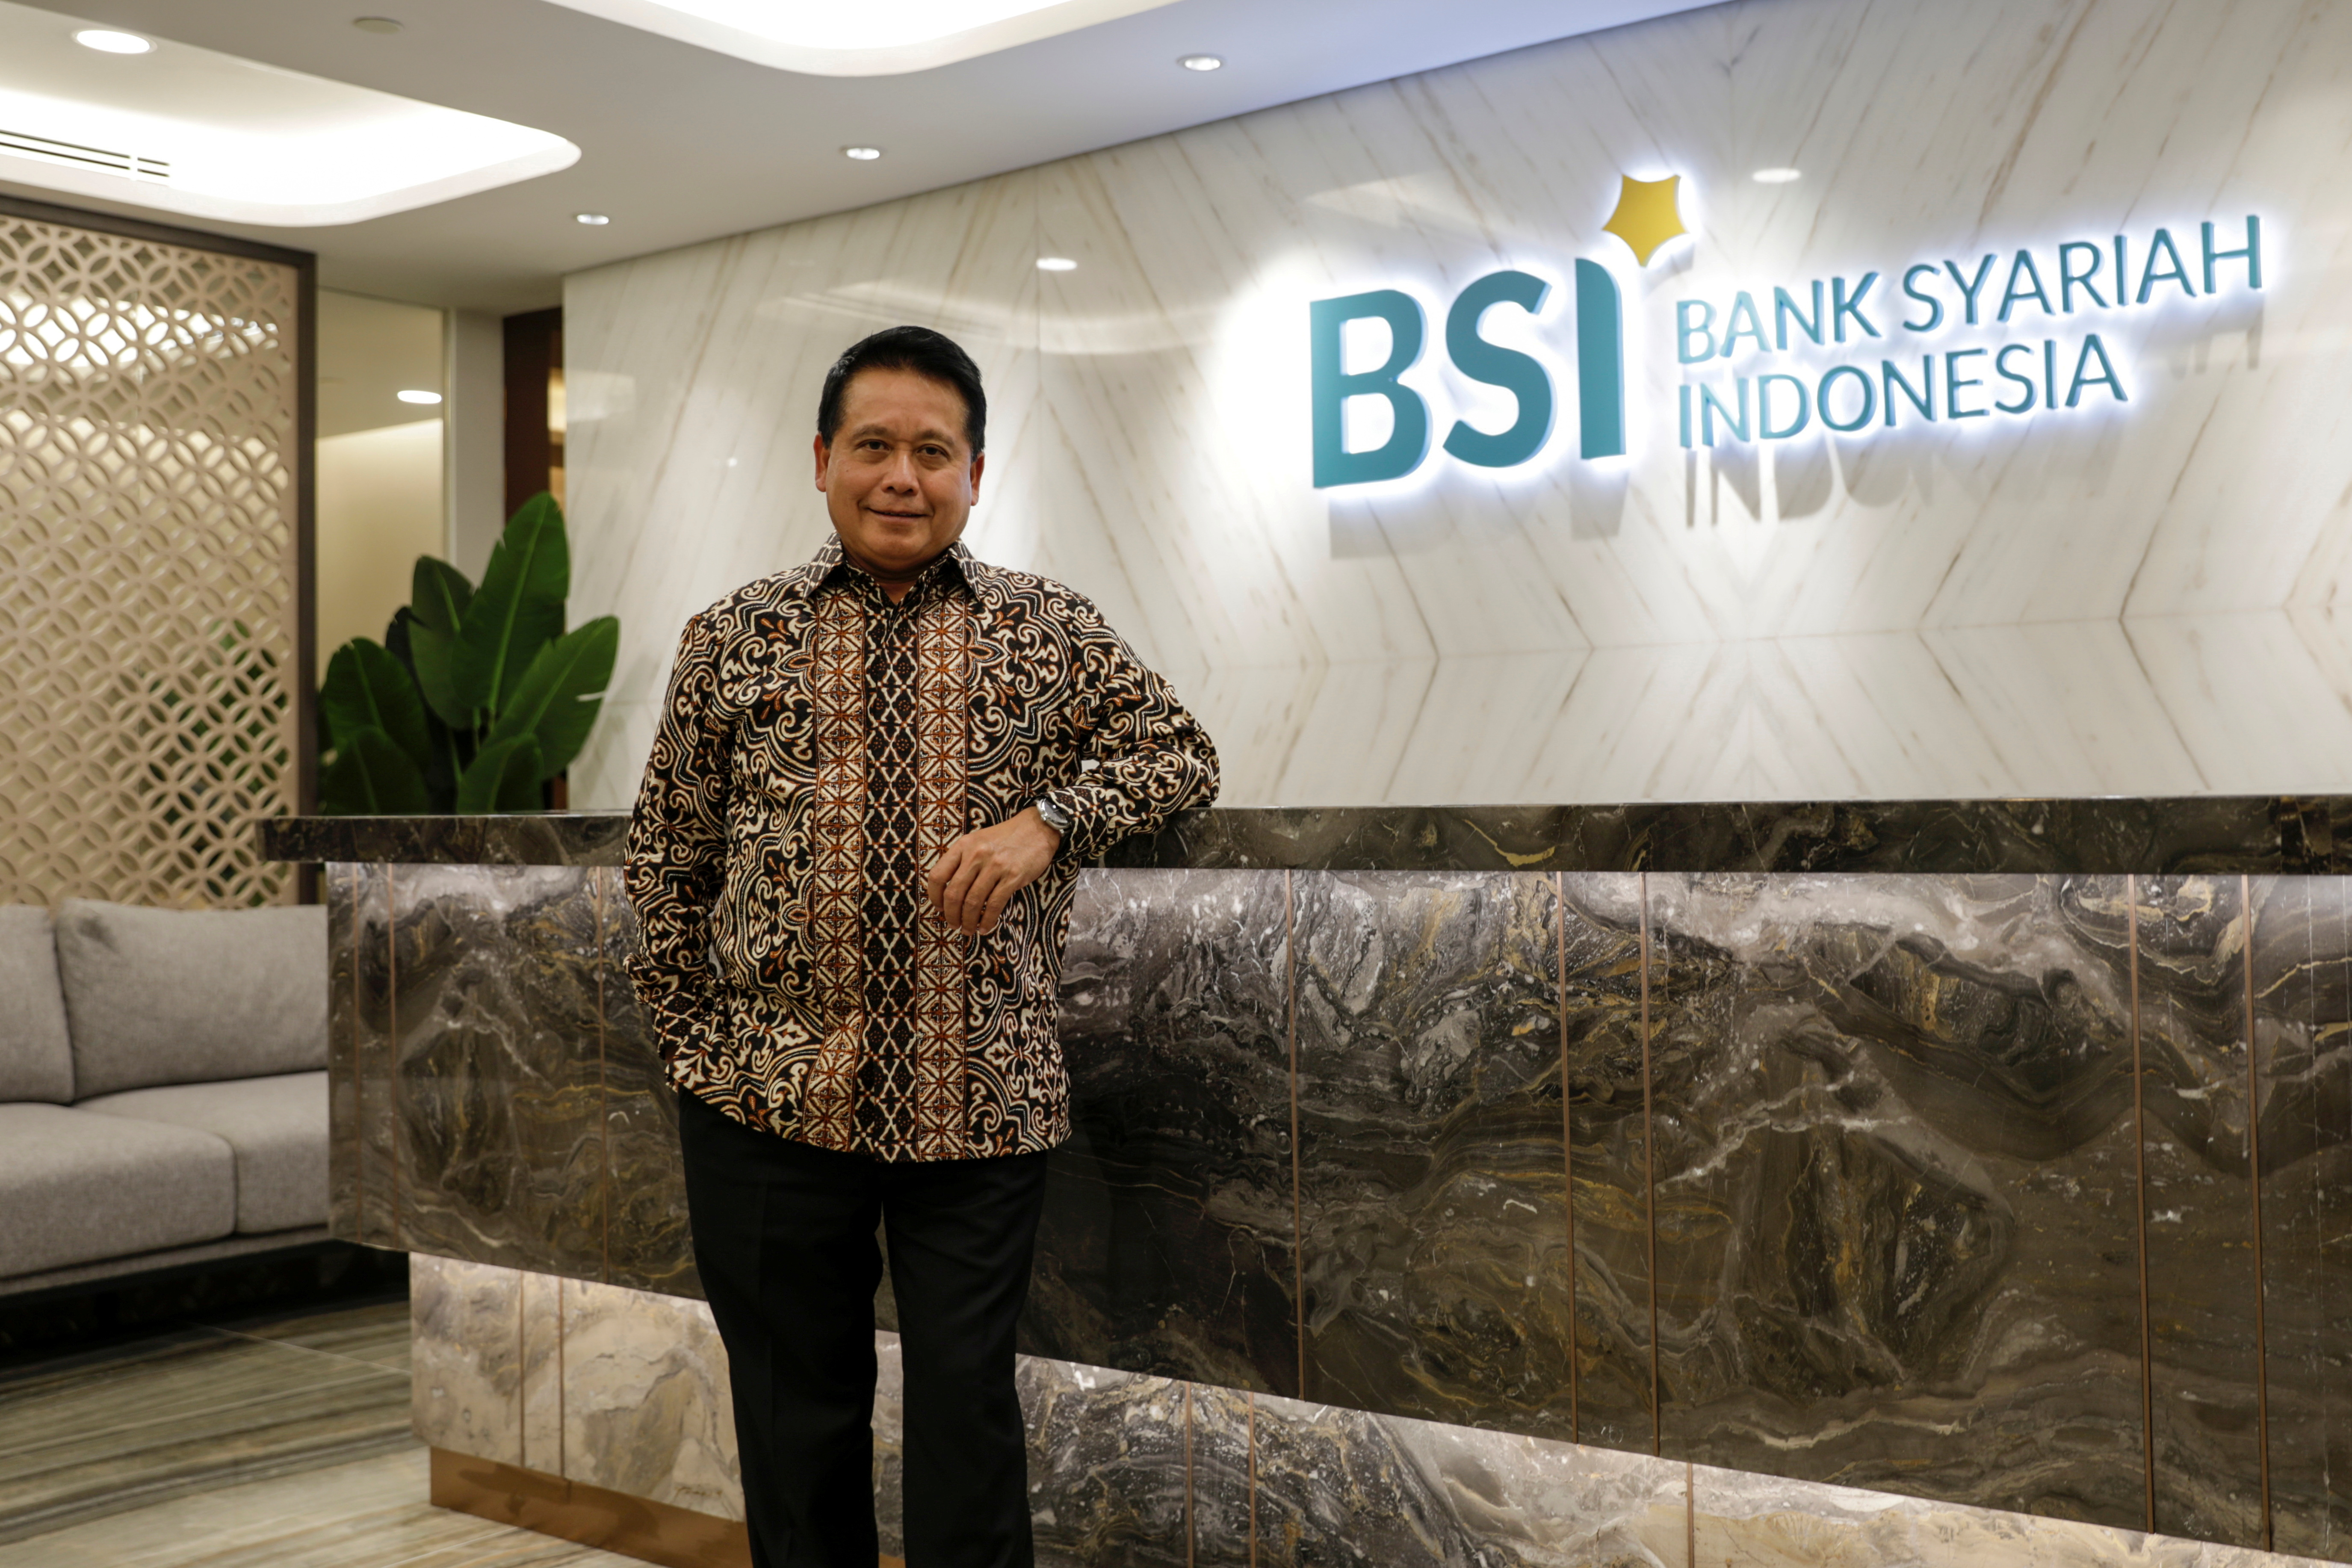 Bank Syariah Indonesia's President Director Hery Gunardi poses for pictures after an online interview in Jakarta, Indonesia, June 7, 2021. Picture taken June 7, 2021. REUTERS/Willy Kurniawan/File Photo